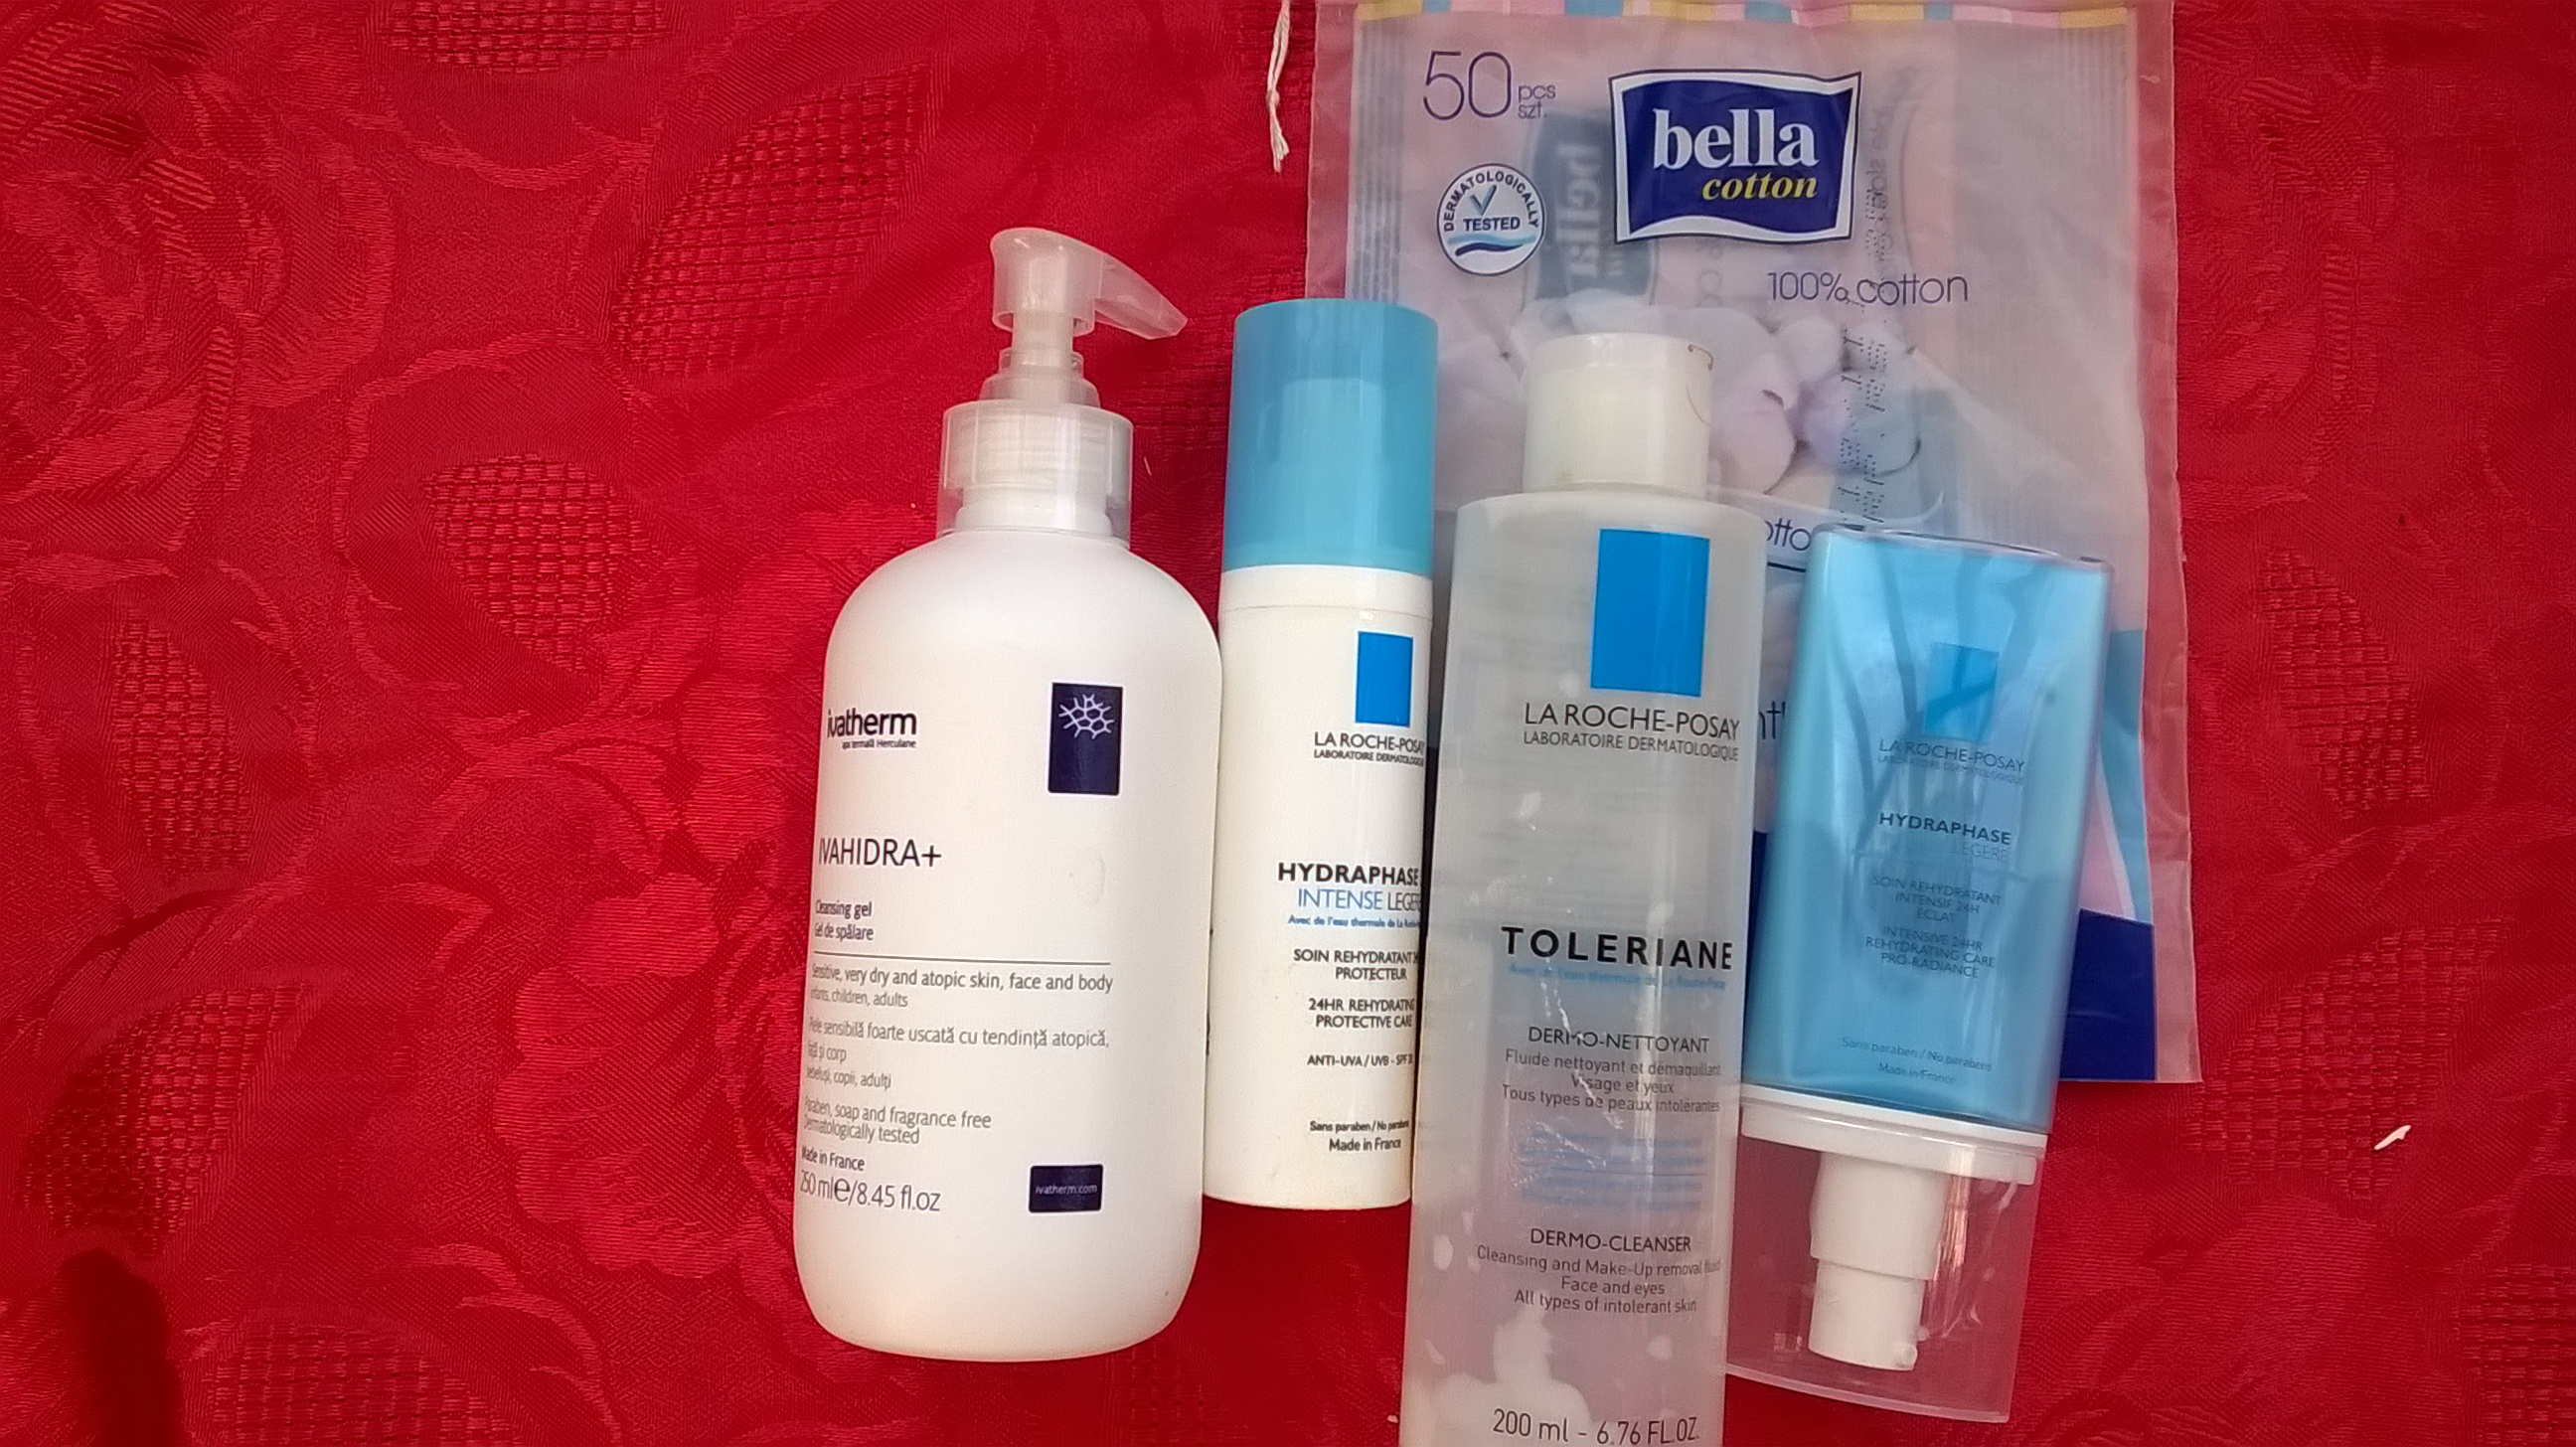 Empties #15 - #18 [part 1]